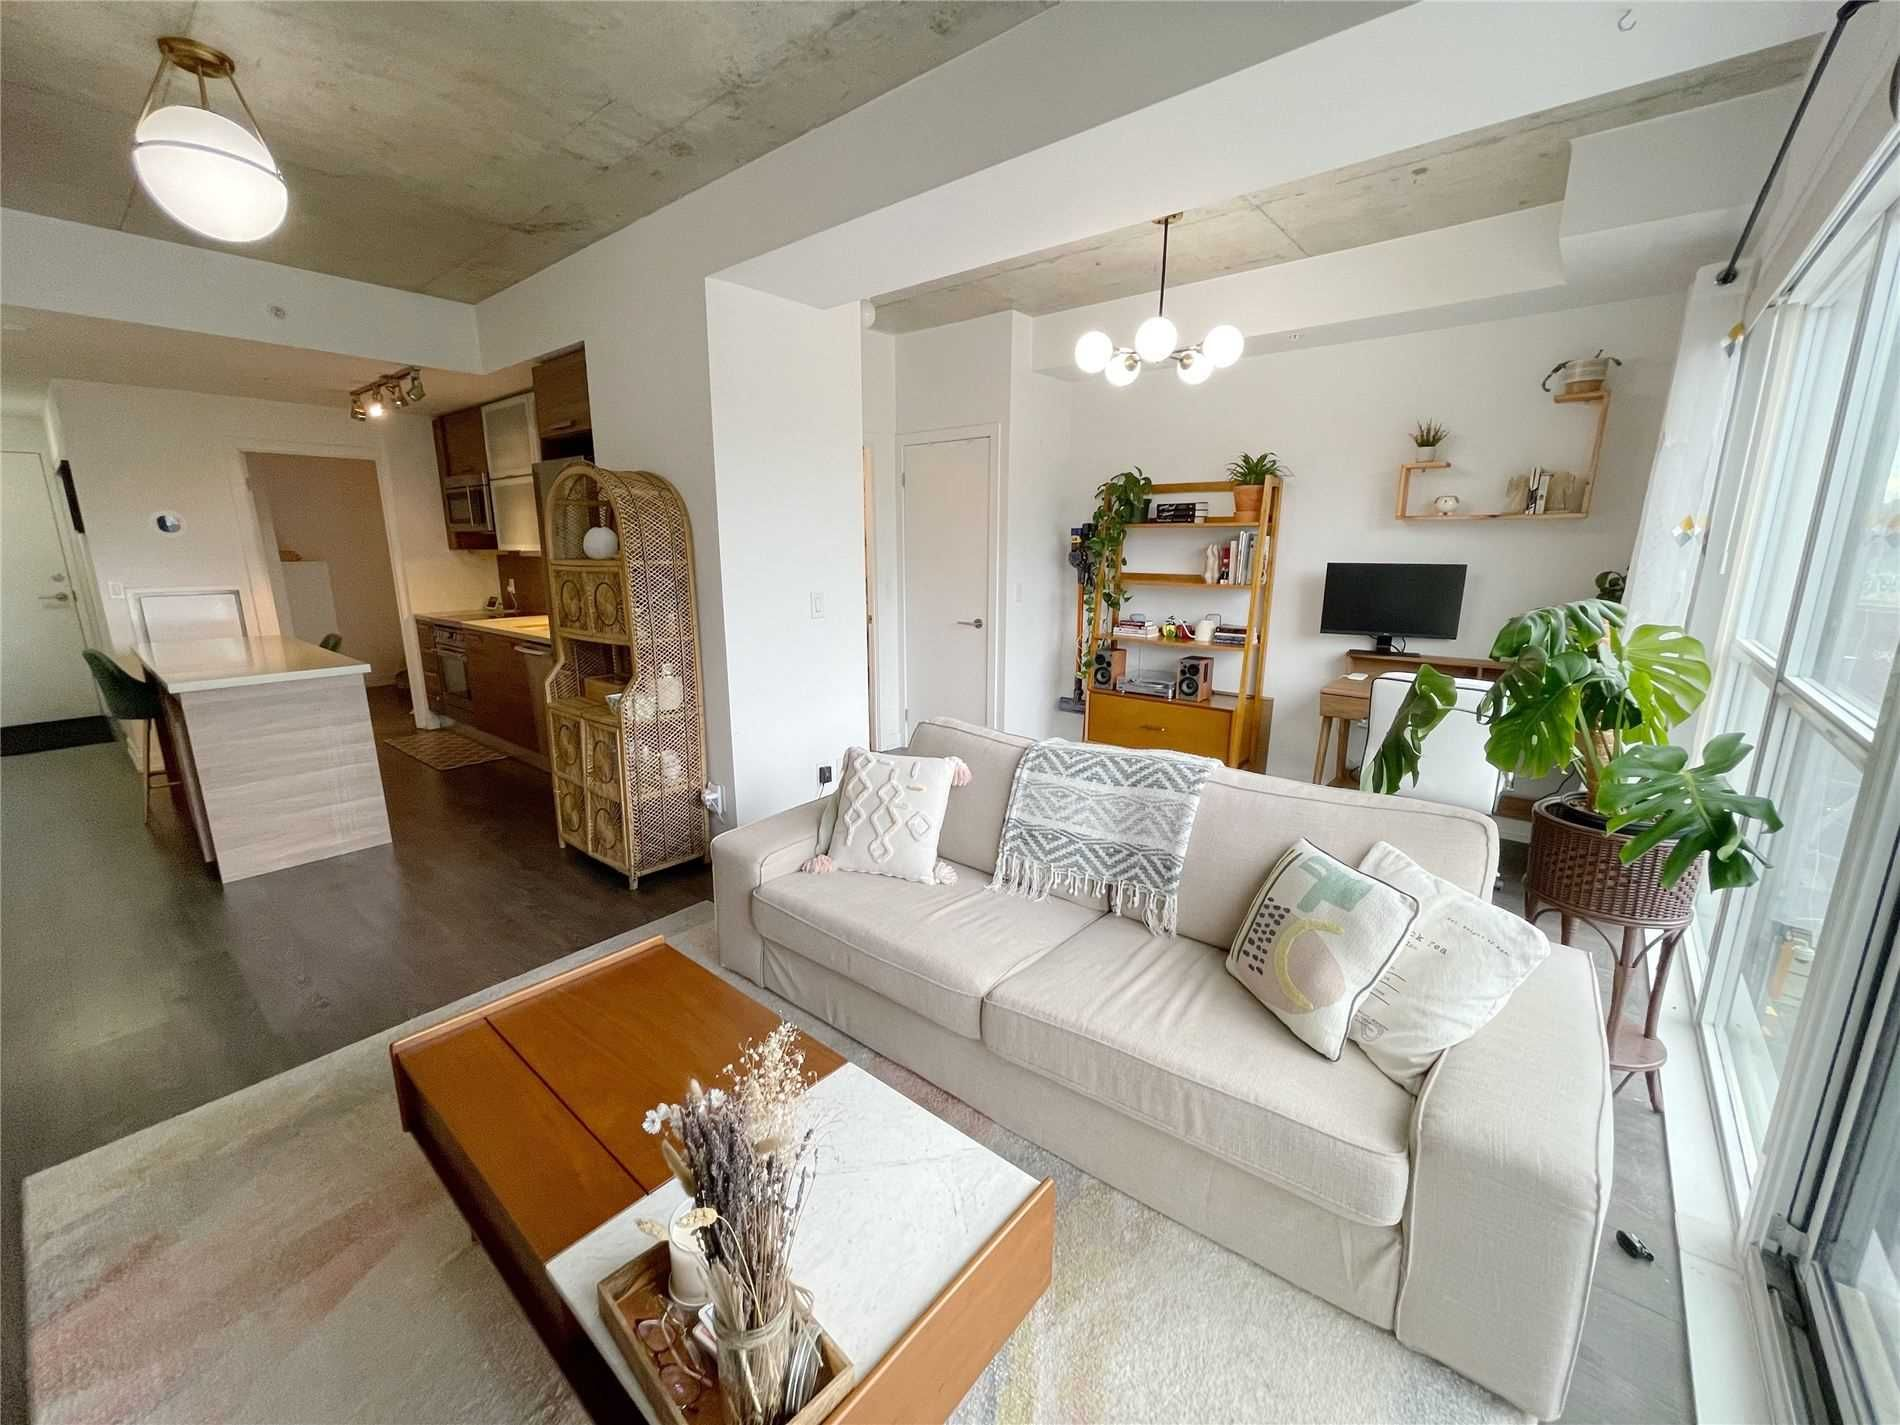 1205 Queen St W, unit 310 for rent in Parkdale - image #1